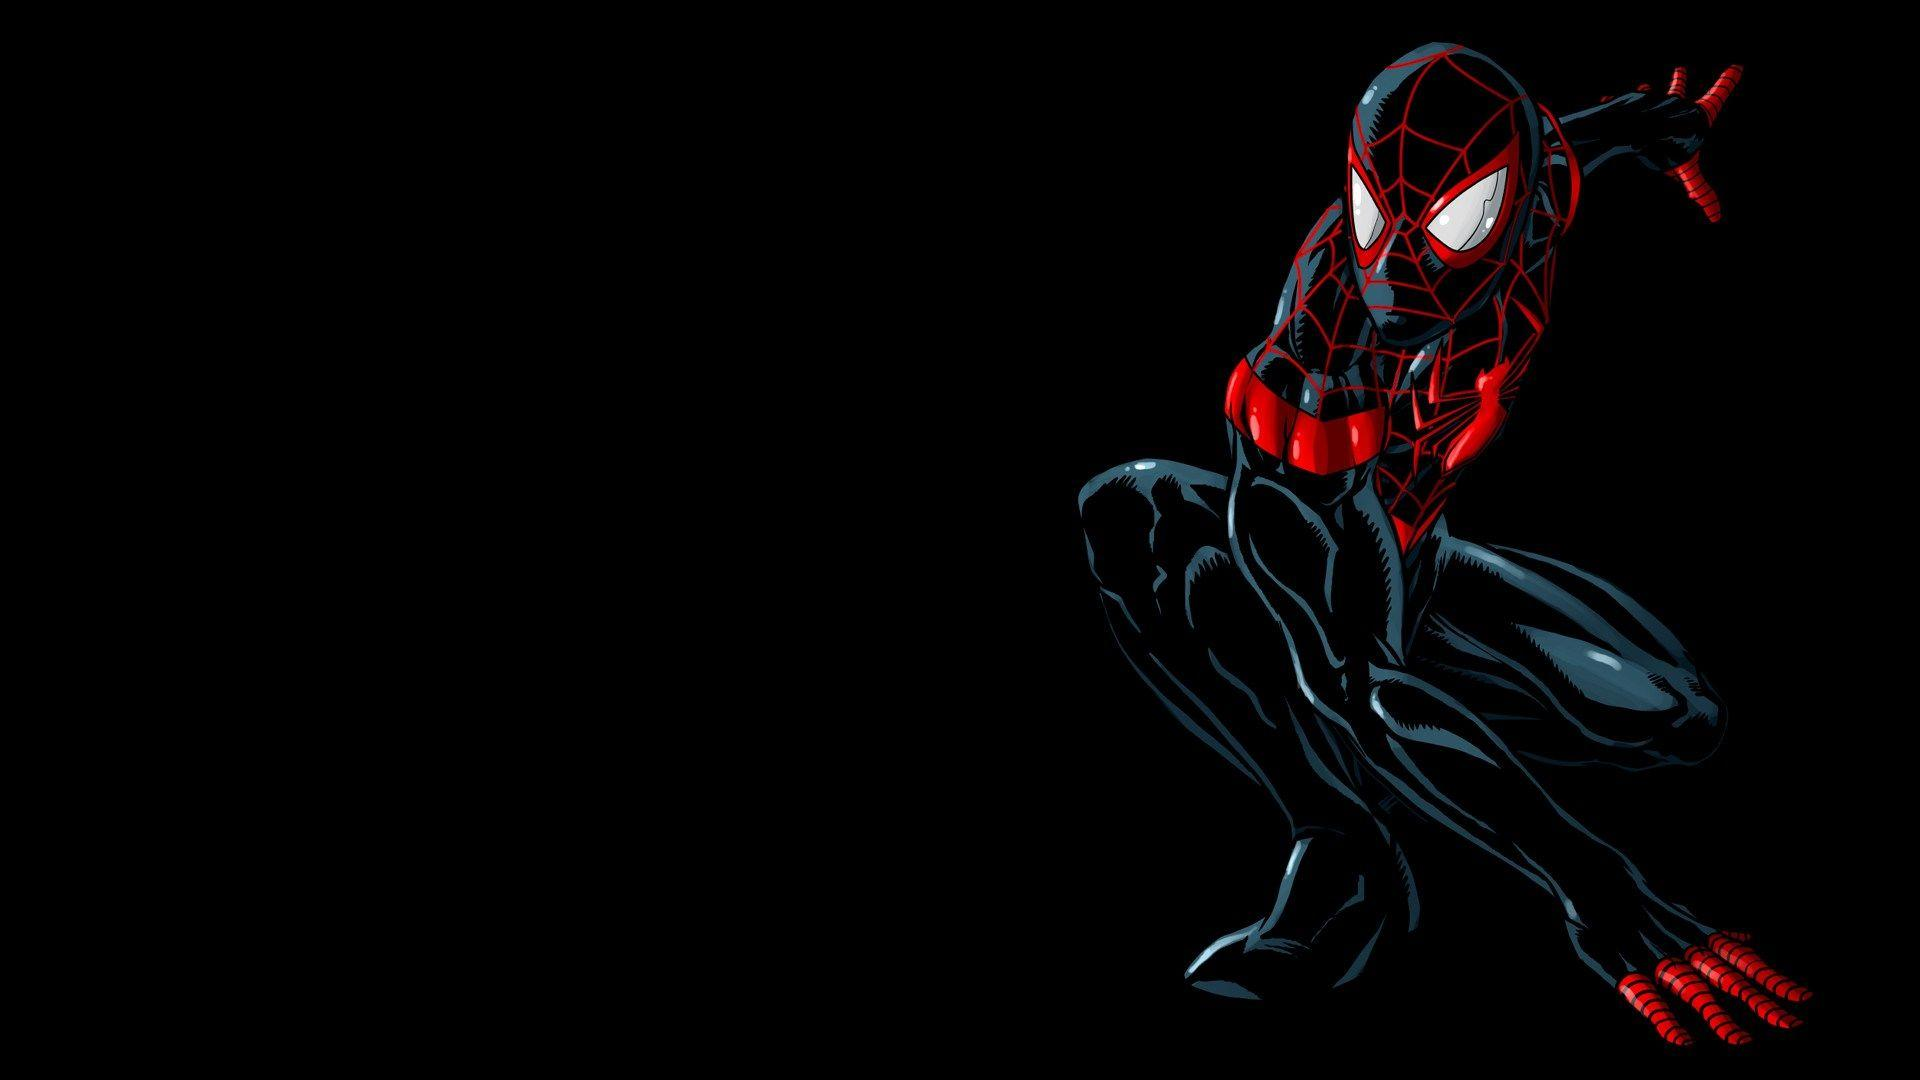 Spider Man 2099 Wallpaper 1080p: Miles Morales Wallpapers